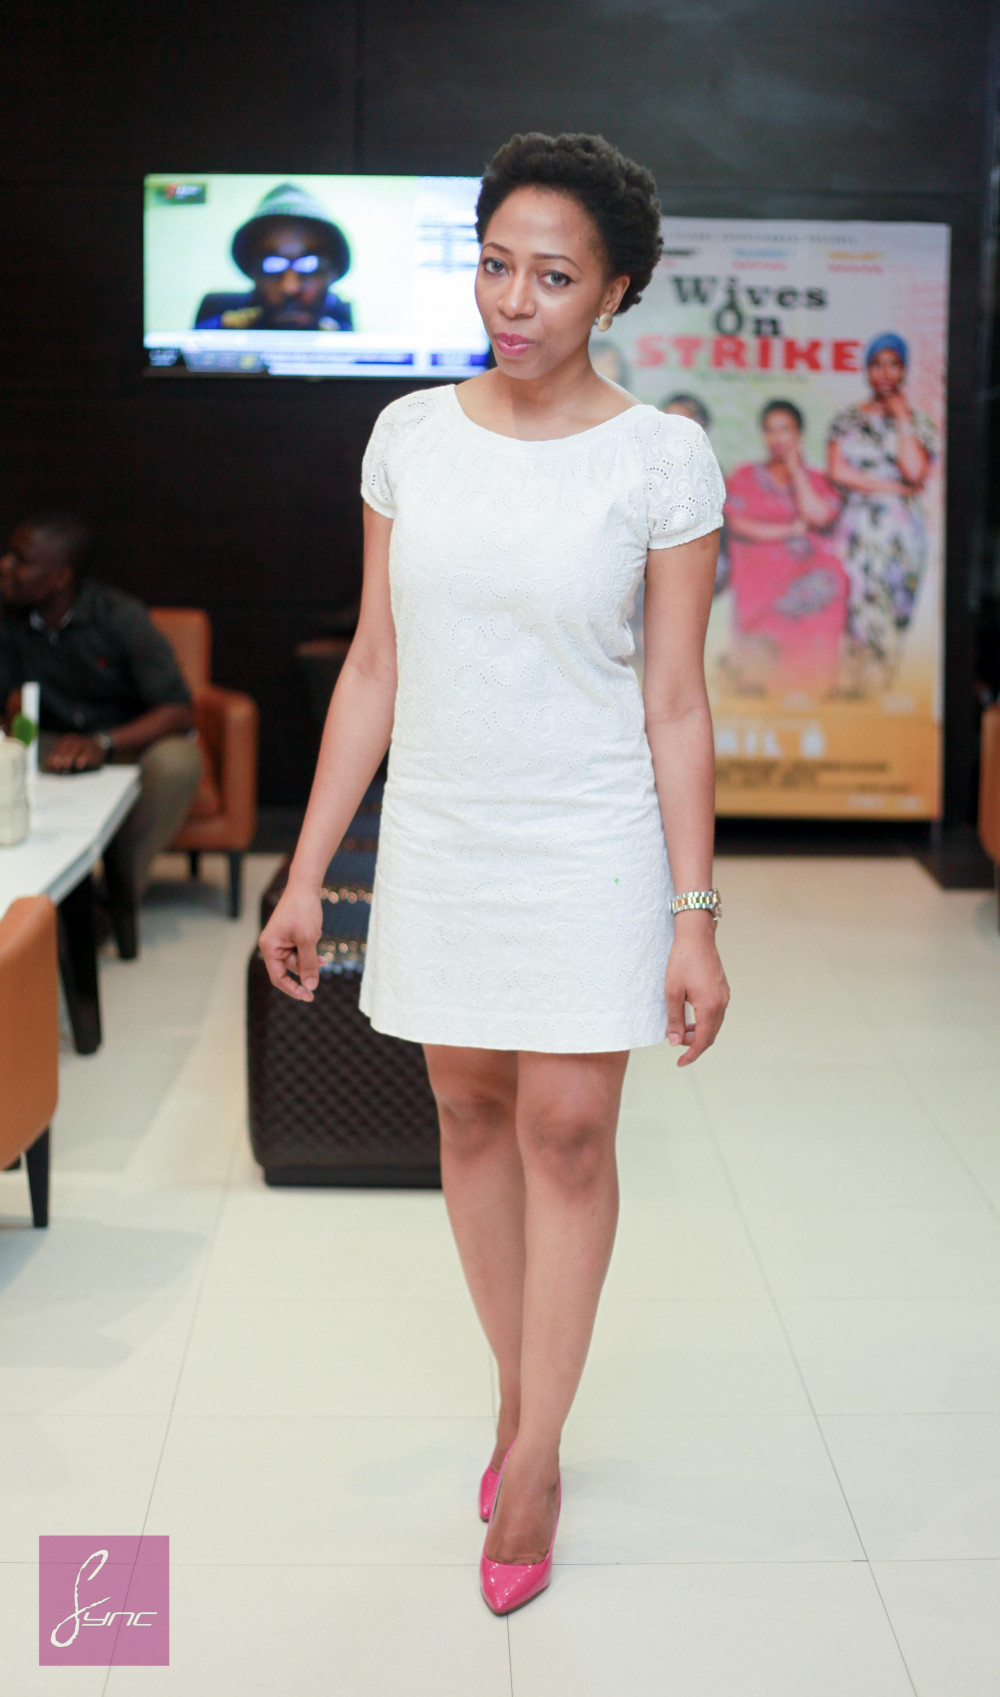 IMG_8739 Omoni Oboli - Birthday Photos - 22APR2016 - Sync